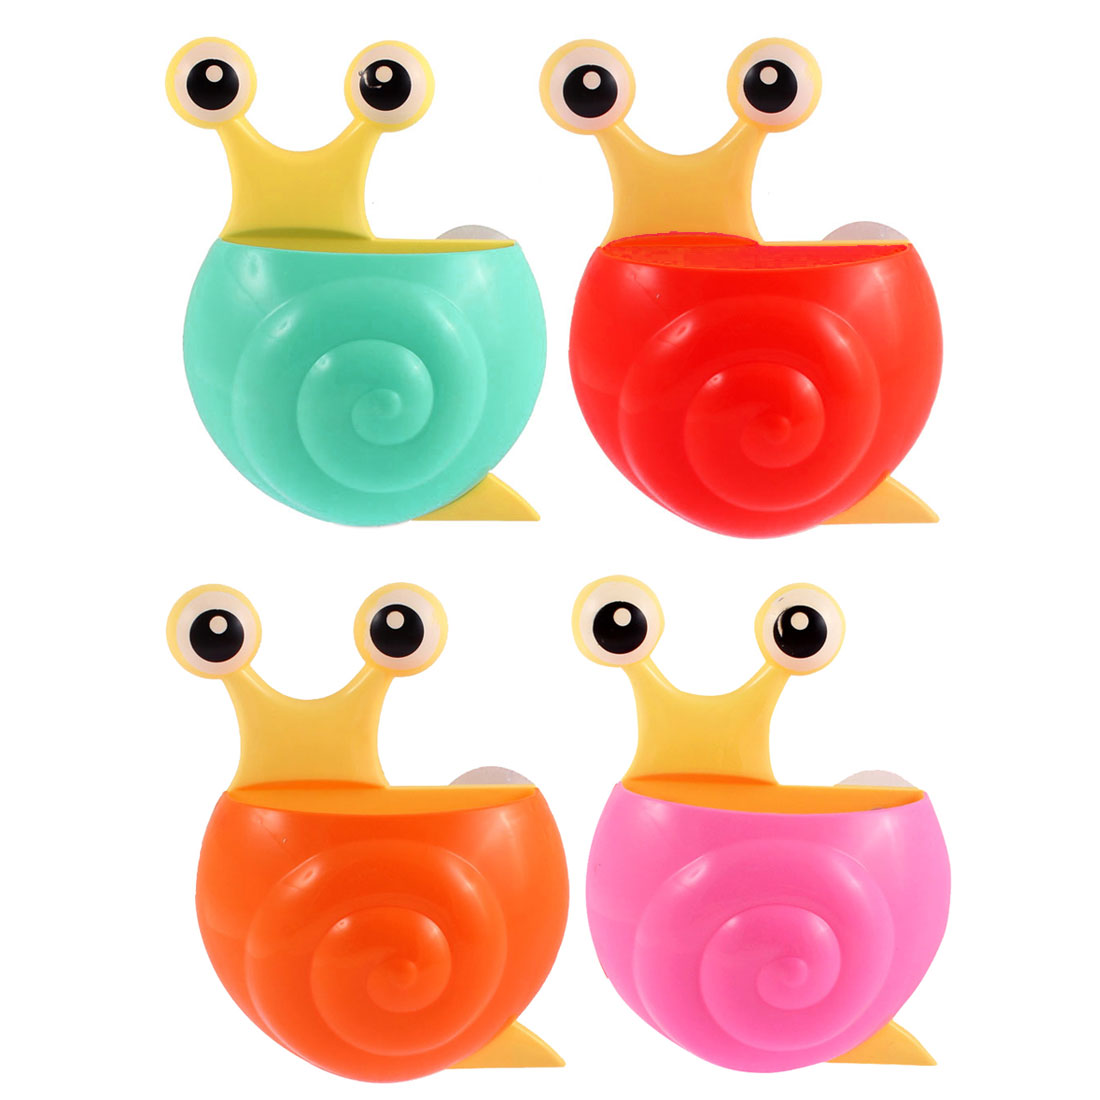 Plastic Snail Shape Suction Cup Toothbrush Toothpaste Holder Assorted Color 4pcs